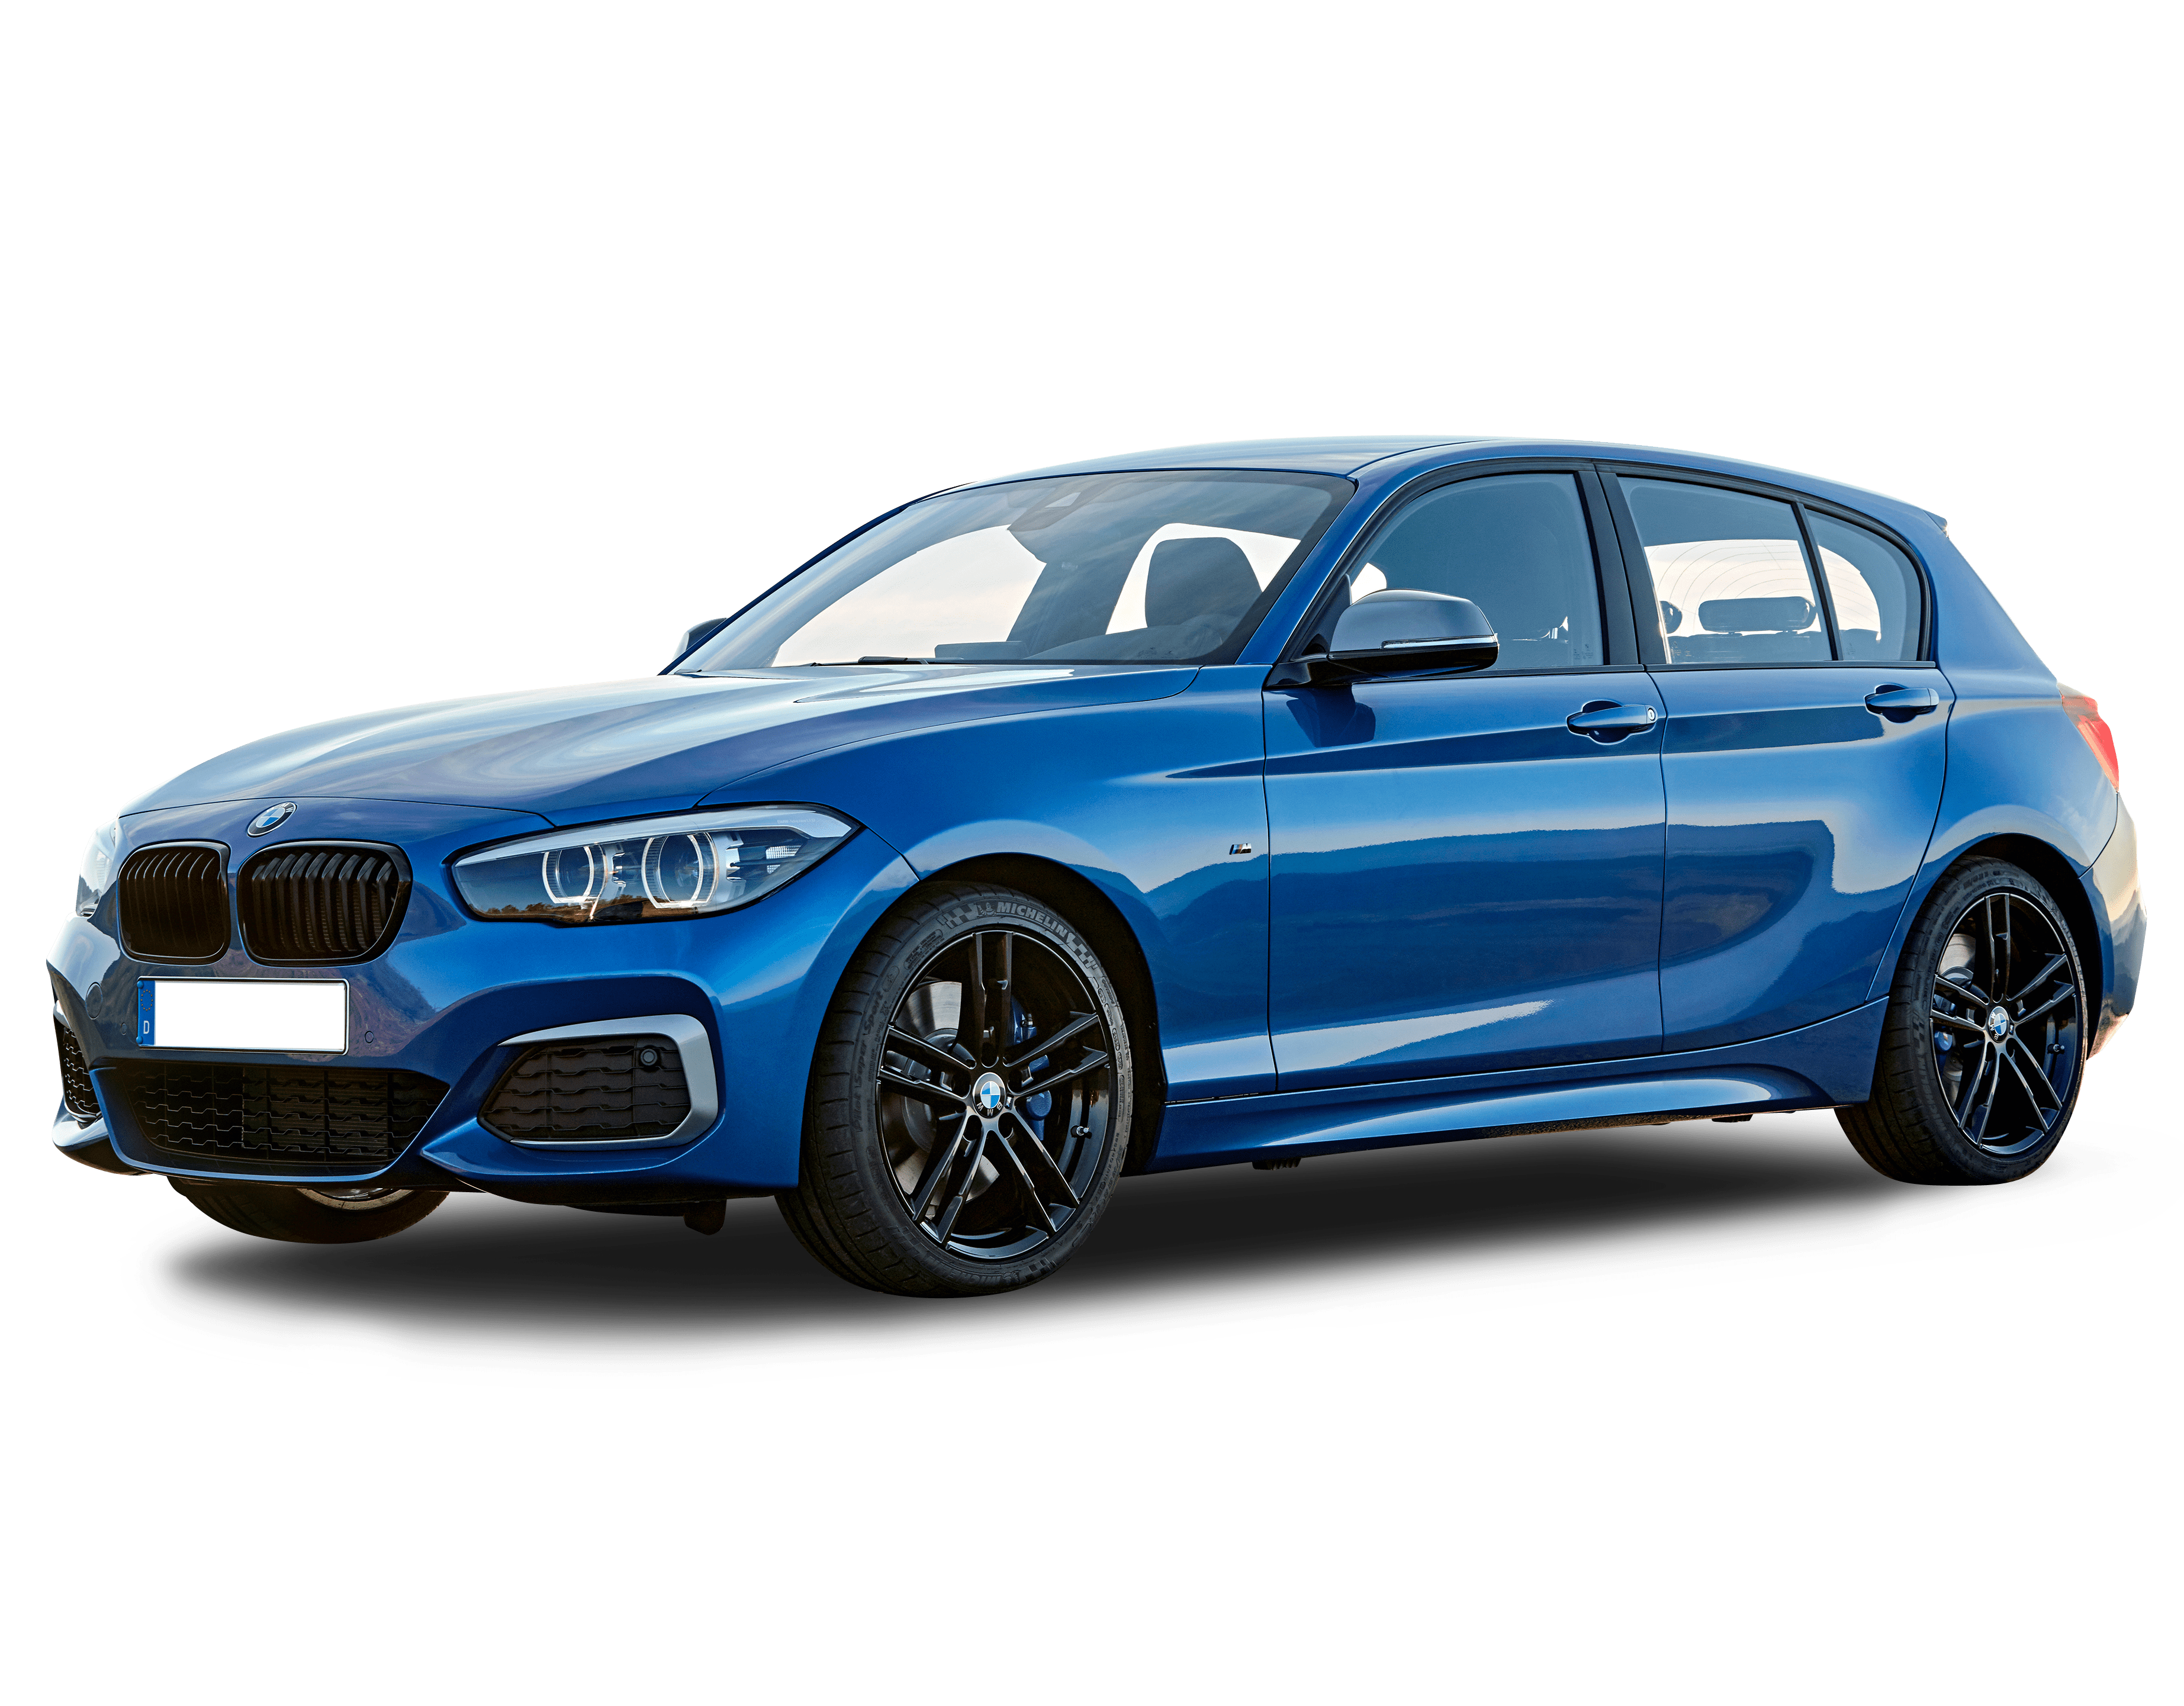 Bmw 1 Series Review Price For Sale Colours Interior Specs Carsguide